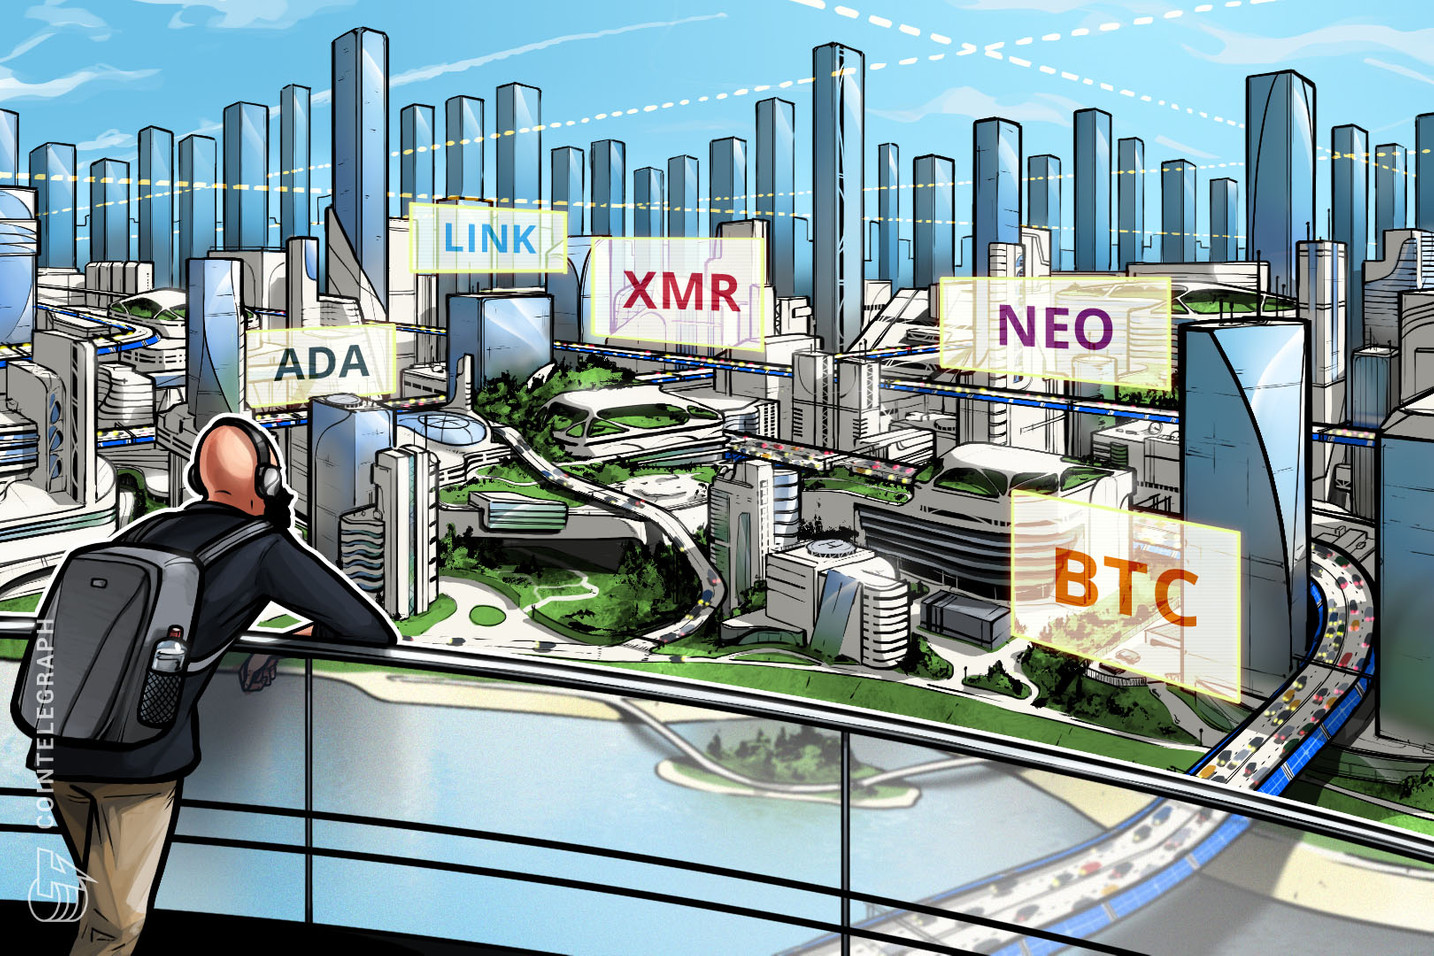 Top 5 cryptocurrencies to watch this week: BTC, NEO, XMR, ADA, LINK